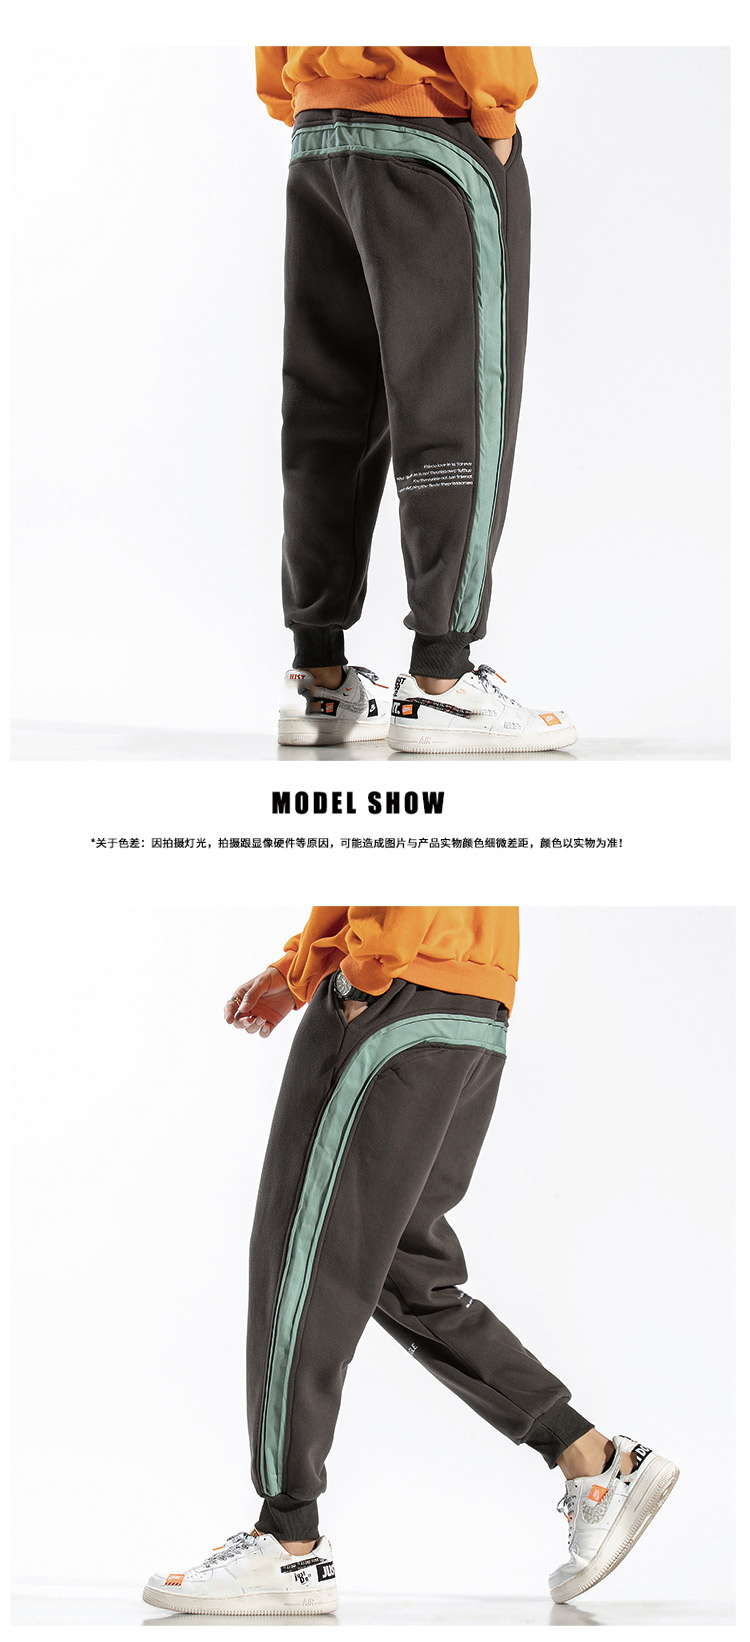 2020 ANKLE-LENGTH Sweatpants Streetwear Spring Autumn Hip Hop Harem Pants Mens Casual Korean Oversize 5XL 6XL Joggers Trouers